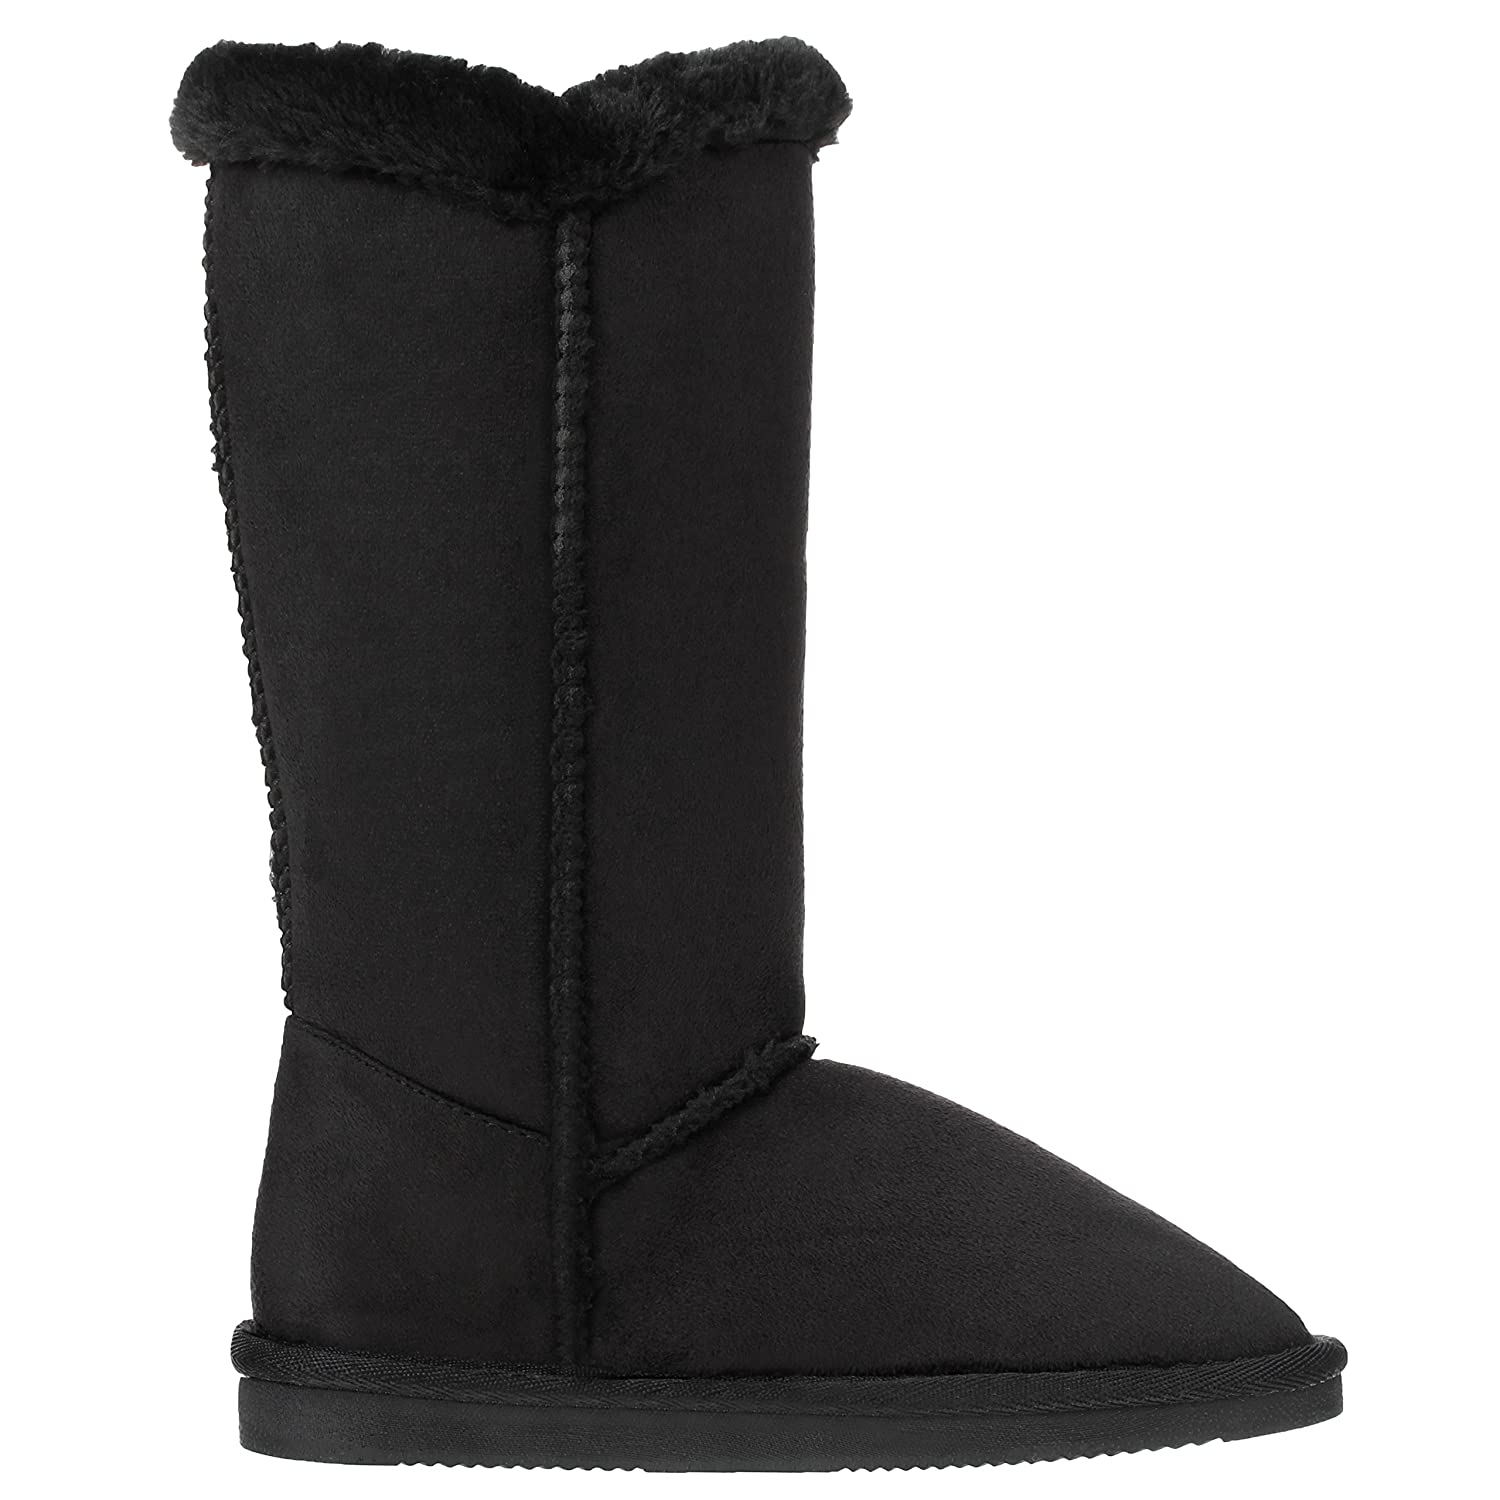 CLOVERLY Girls Kids Four Button Faux Fur Lined Shearling Mid Calf Winter Boots